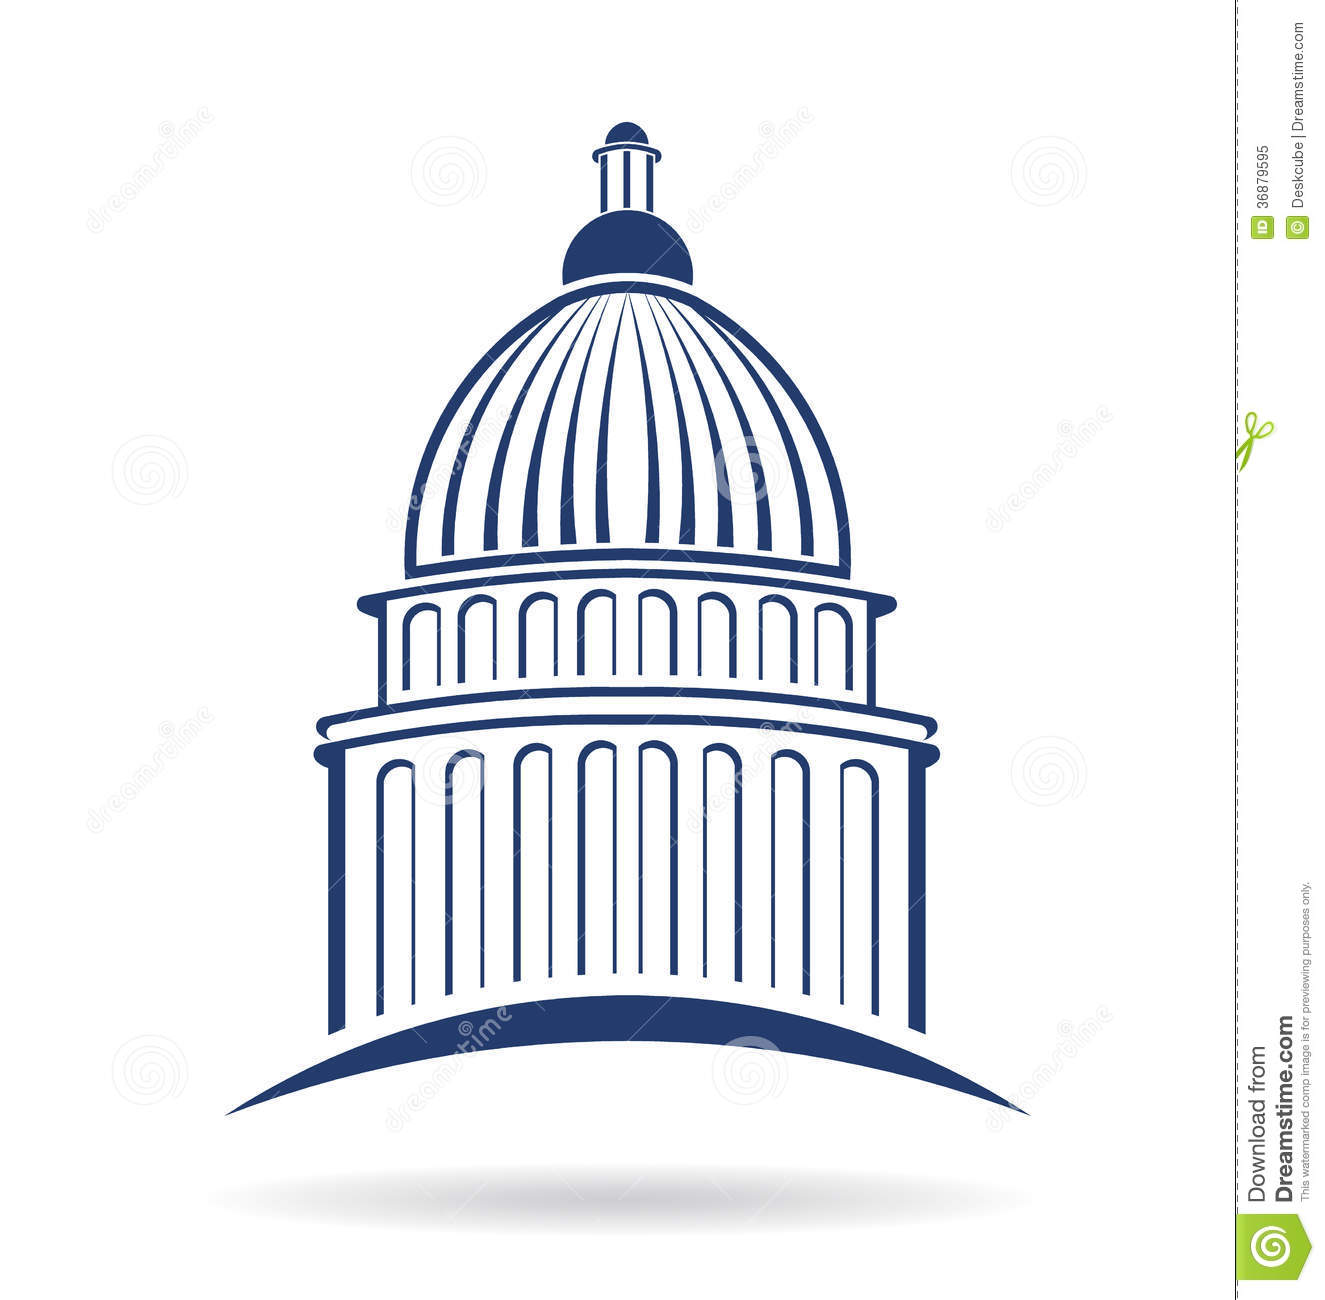 Capitol building clipart png banner transparent library Capitol building clip art - ClipartFest banner transparent library